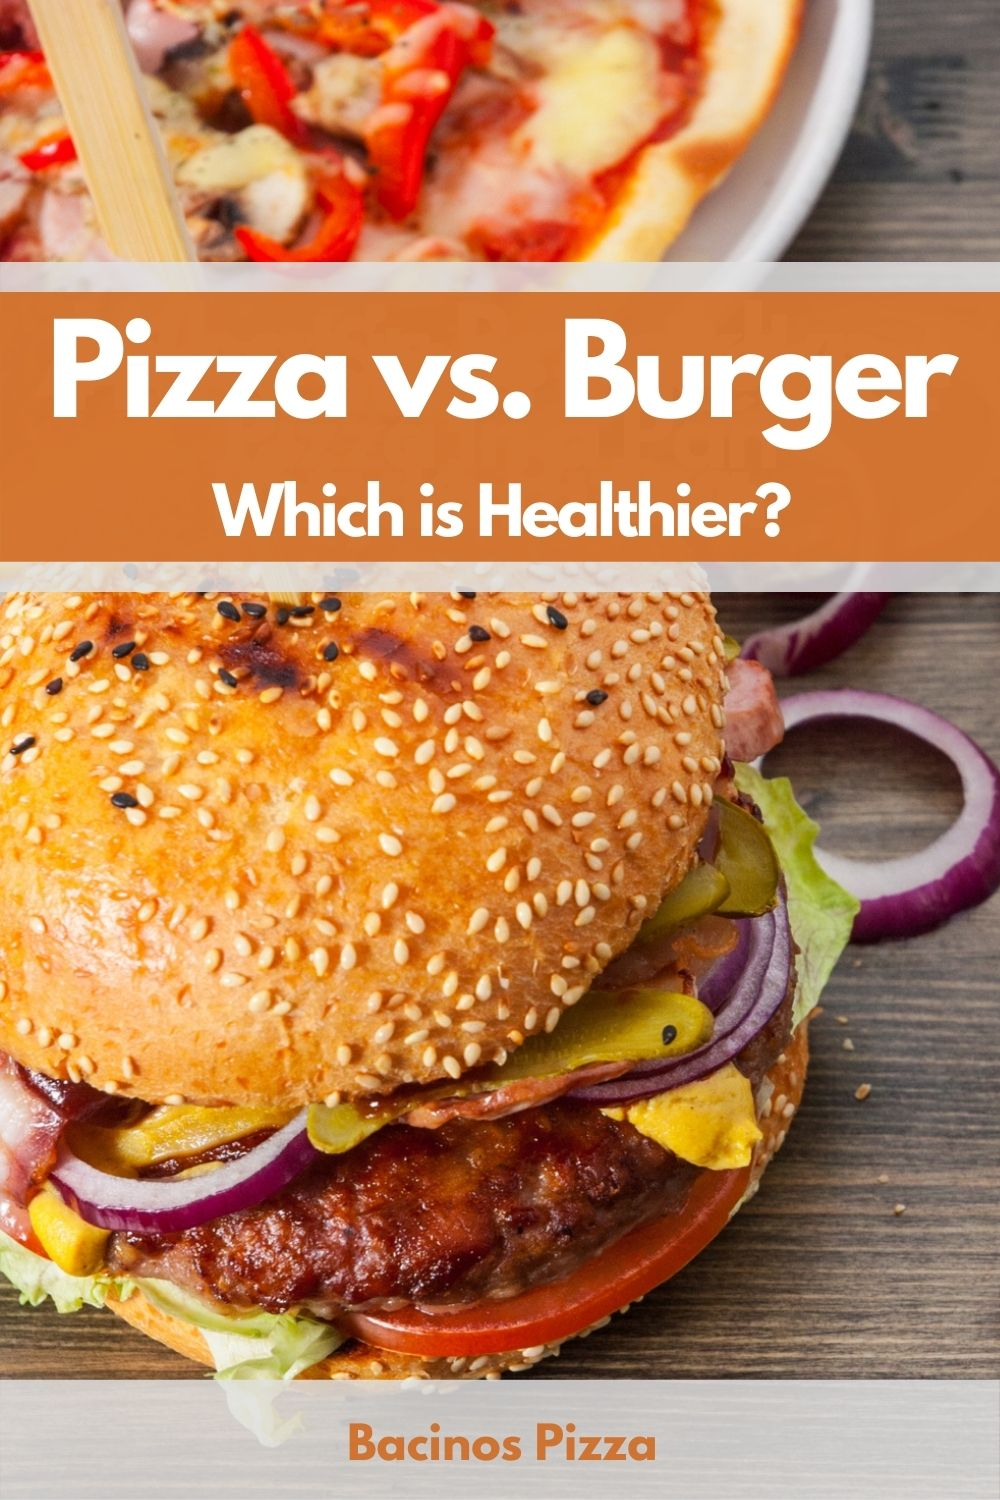 Pizza vs. Burger Which is Healthier pin 2